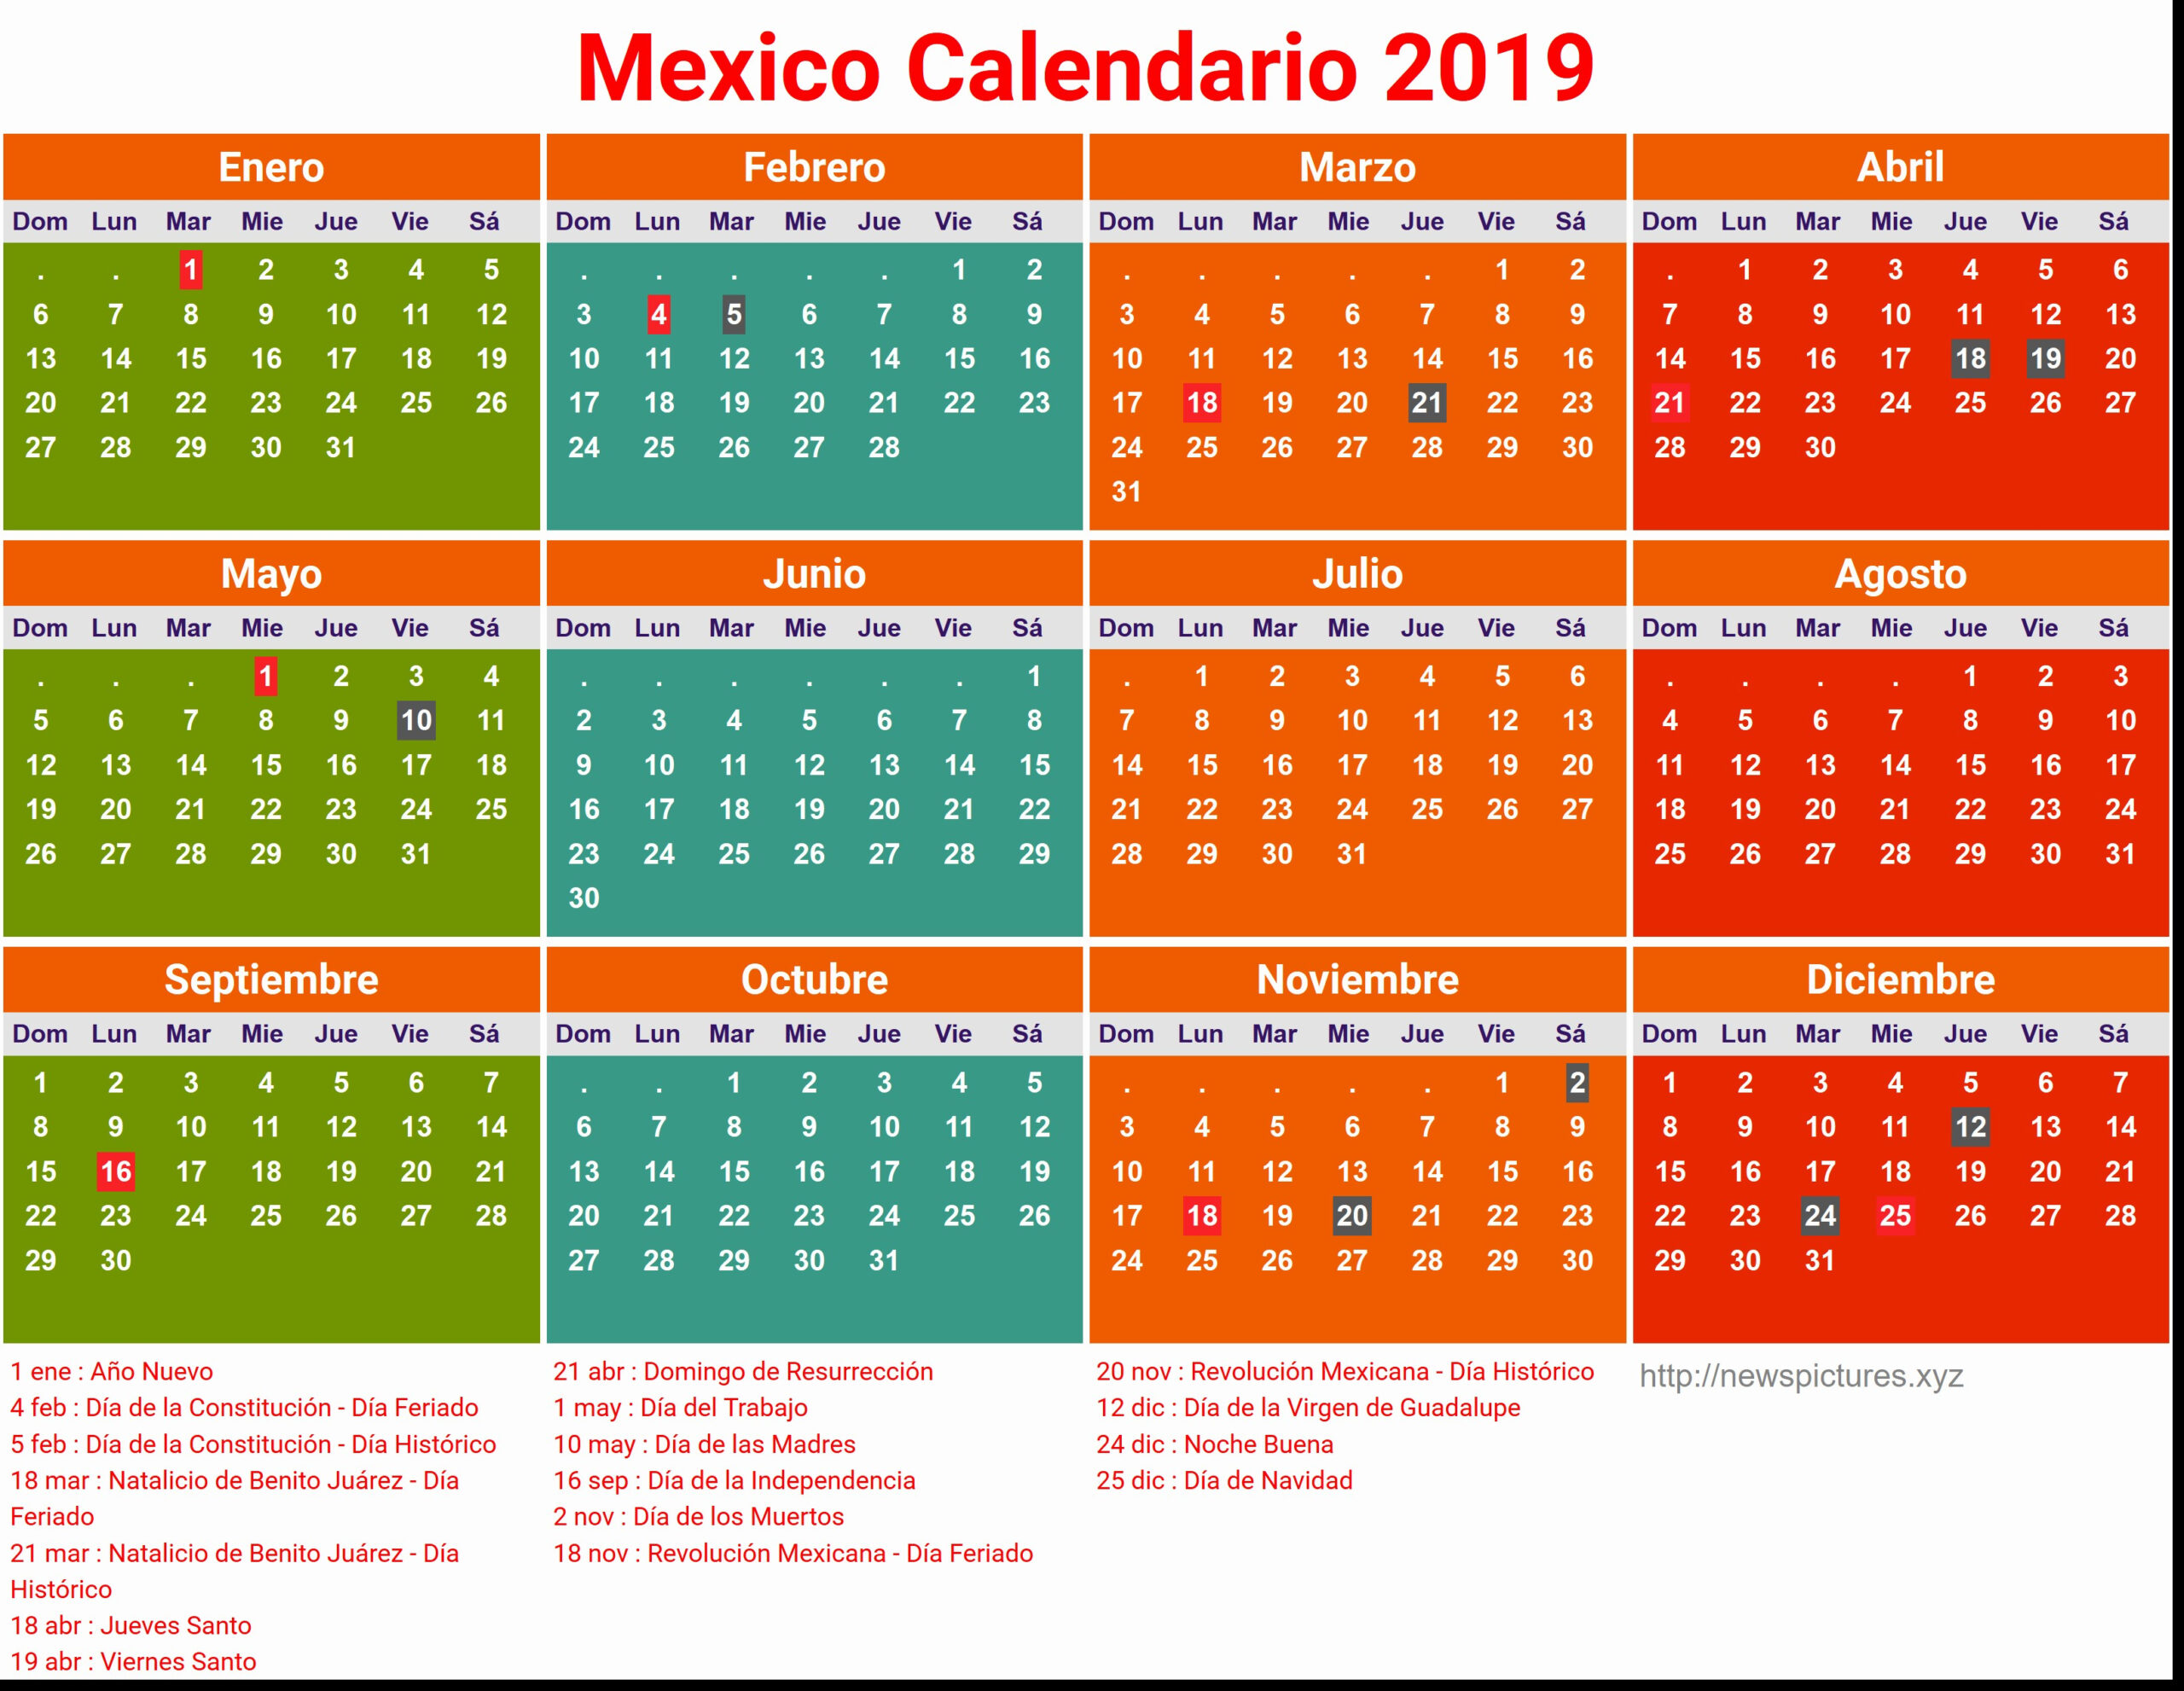 Prensa Calendario Michel Zbinden Abril 2019 for Michel Zbinden Calendar